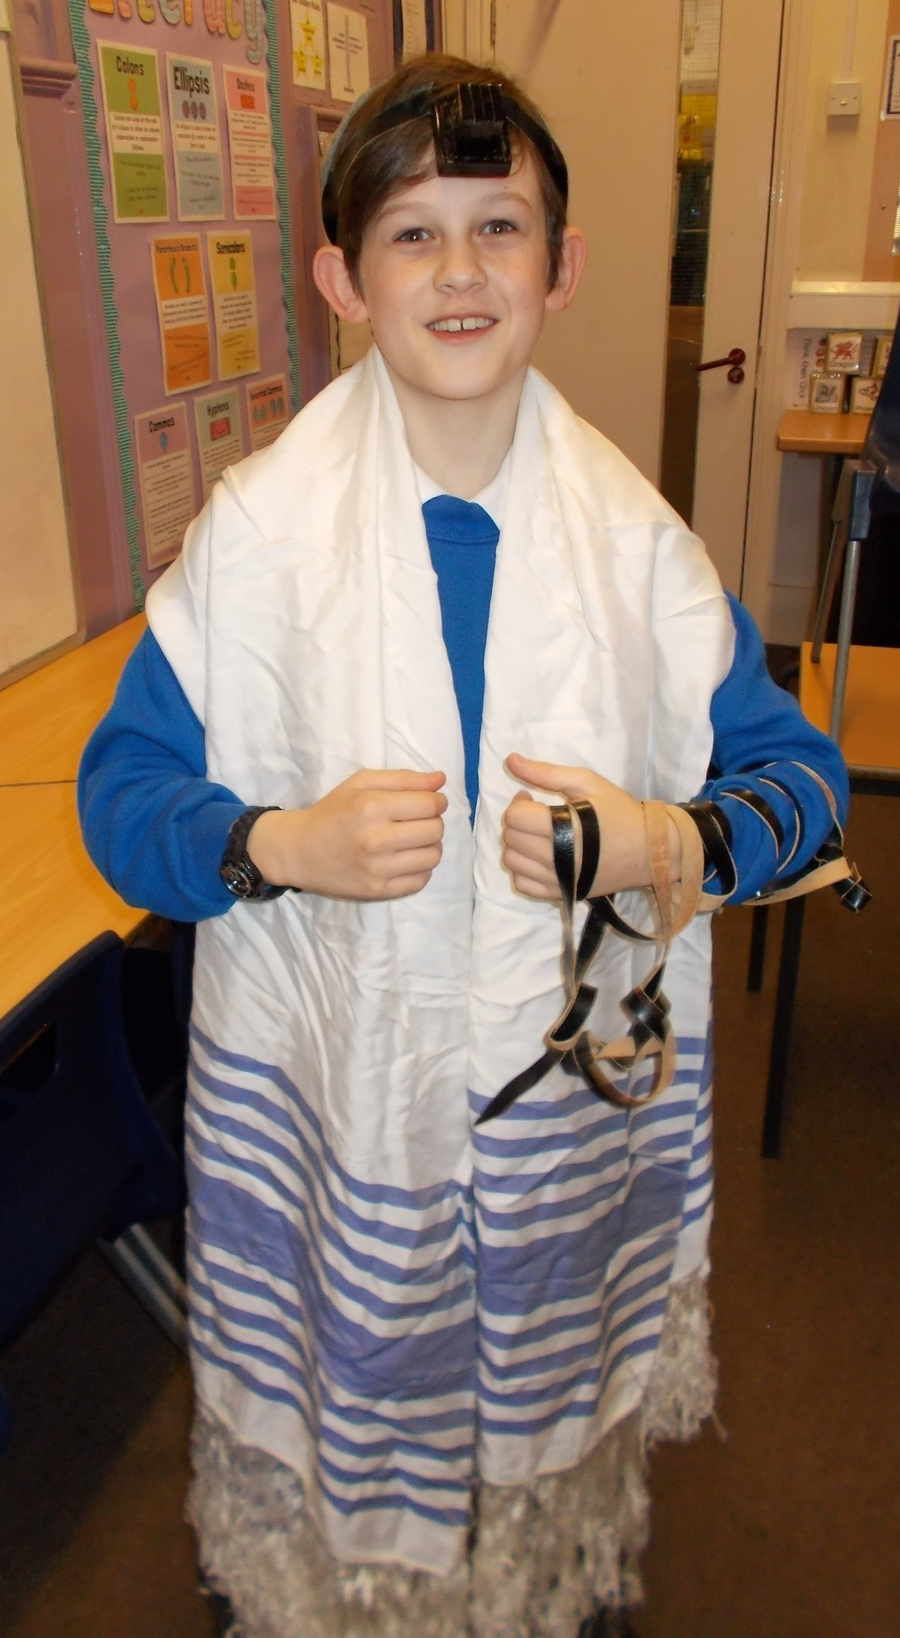 Wearing the tefillin, kippah and prayer shawl